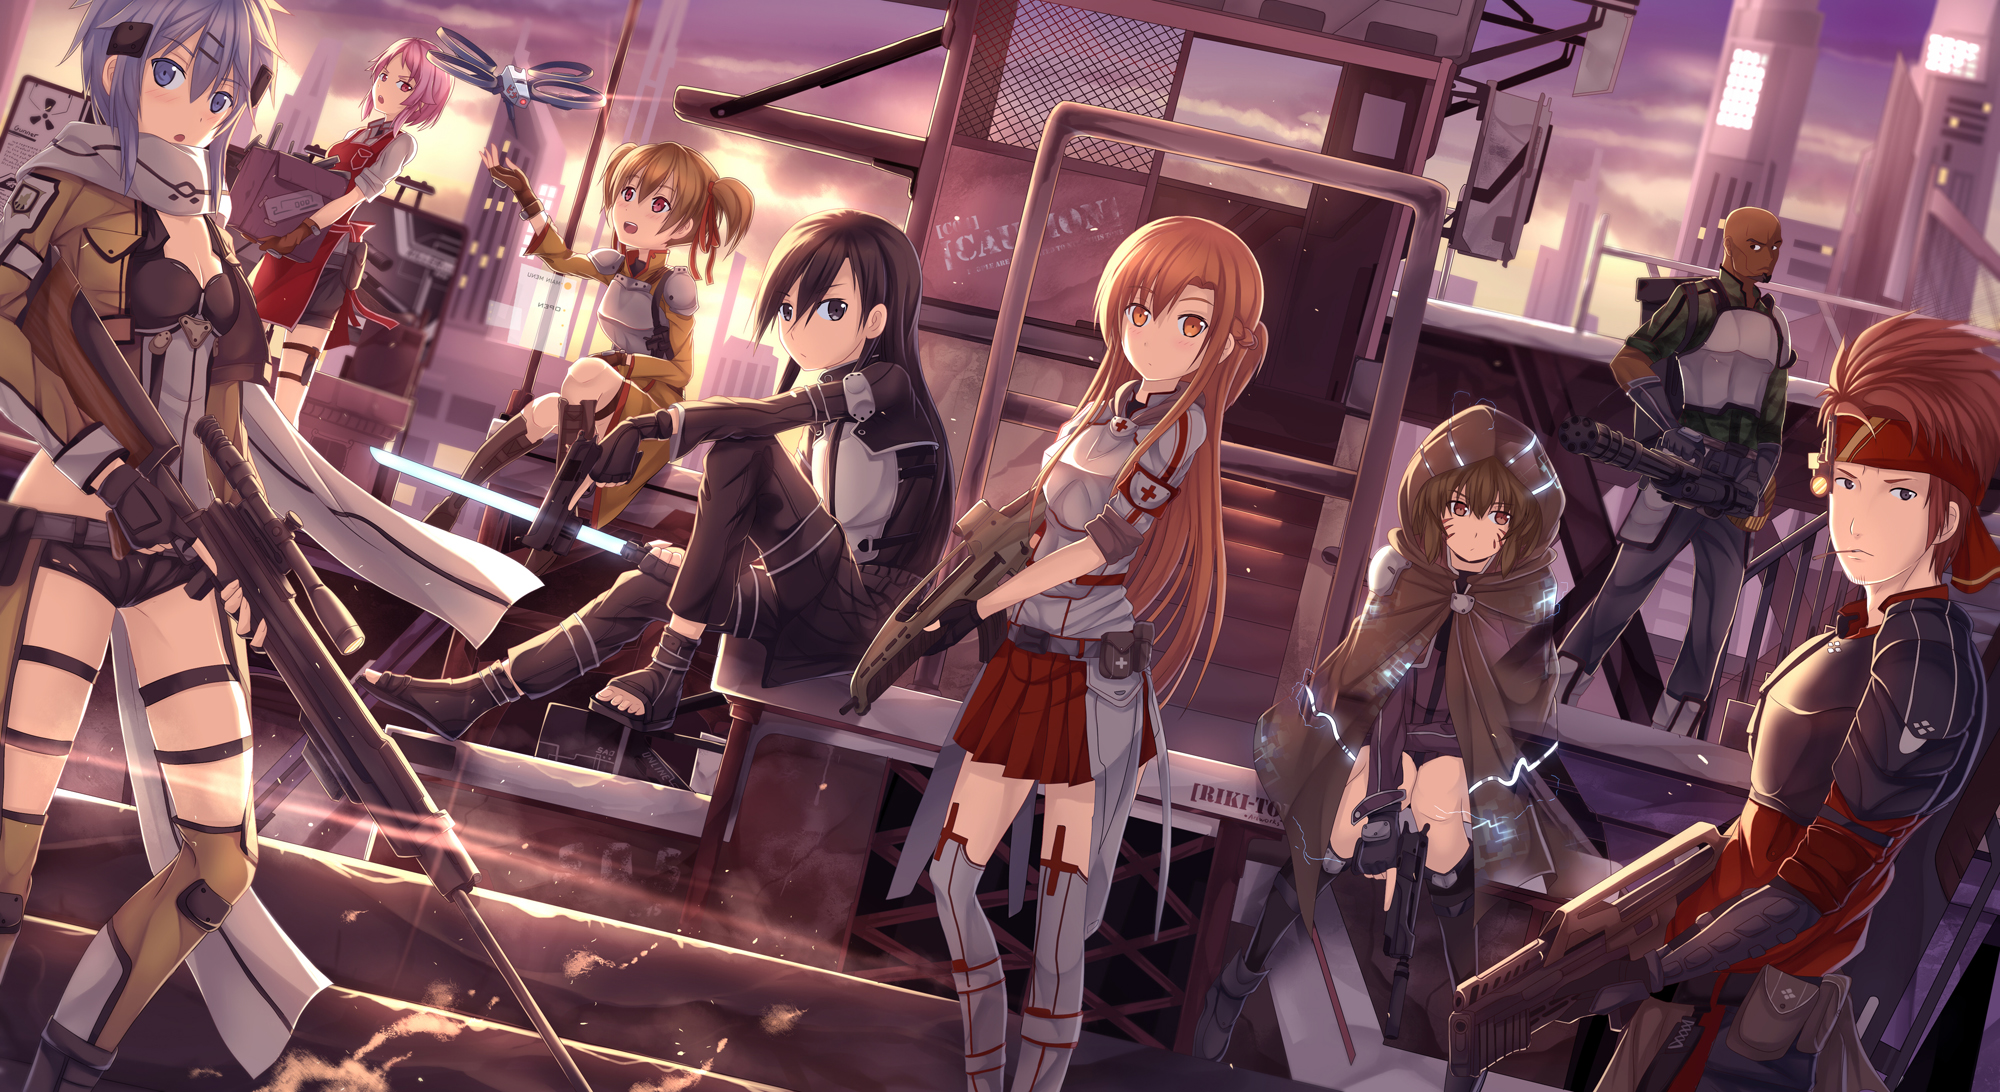 Sword Art Online II   Phantom Bullet image   Anime Fans of modDB     Add media Report RSS Sword Art Online II   Phantom Bullet  view original